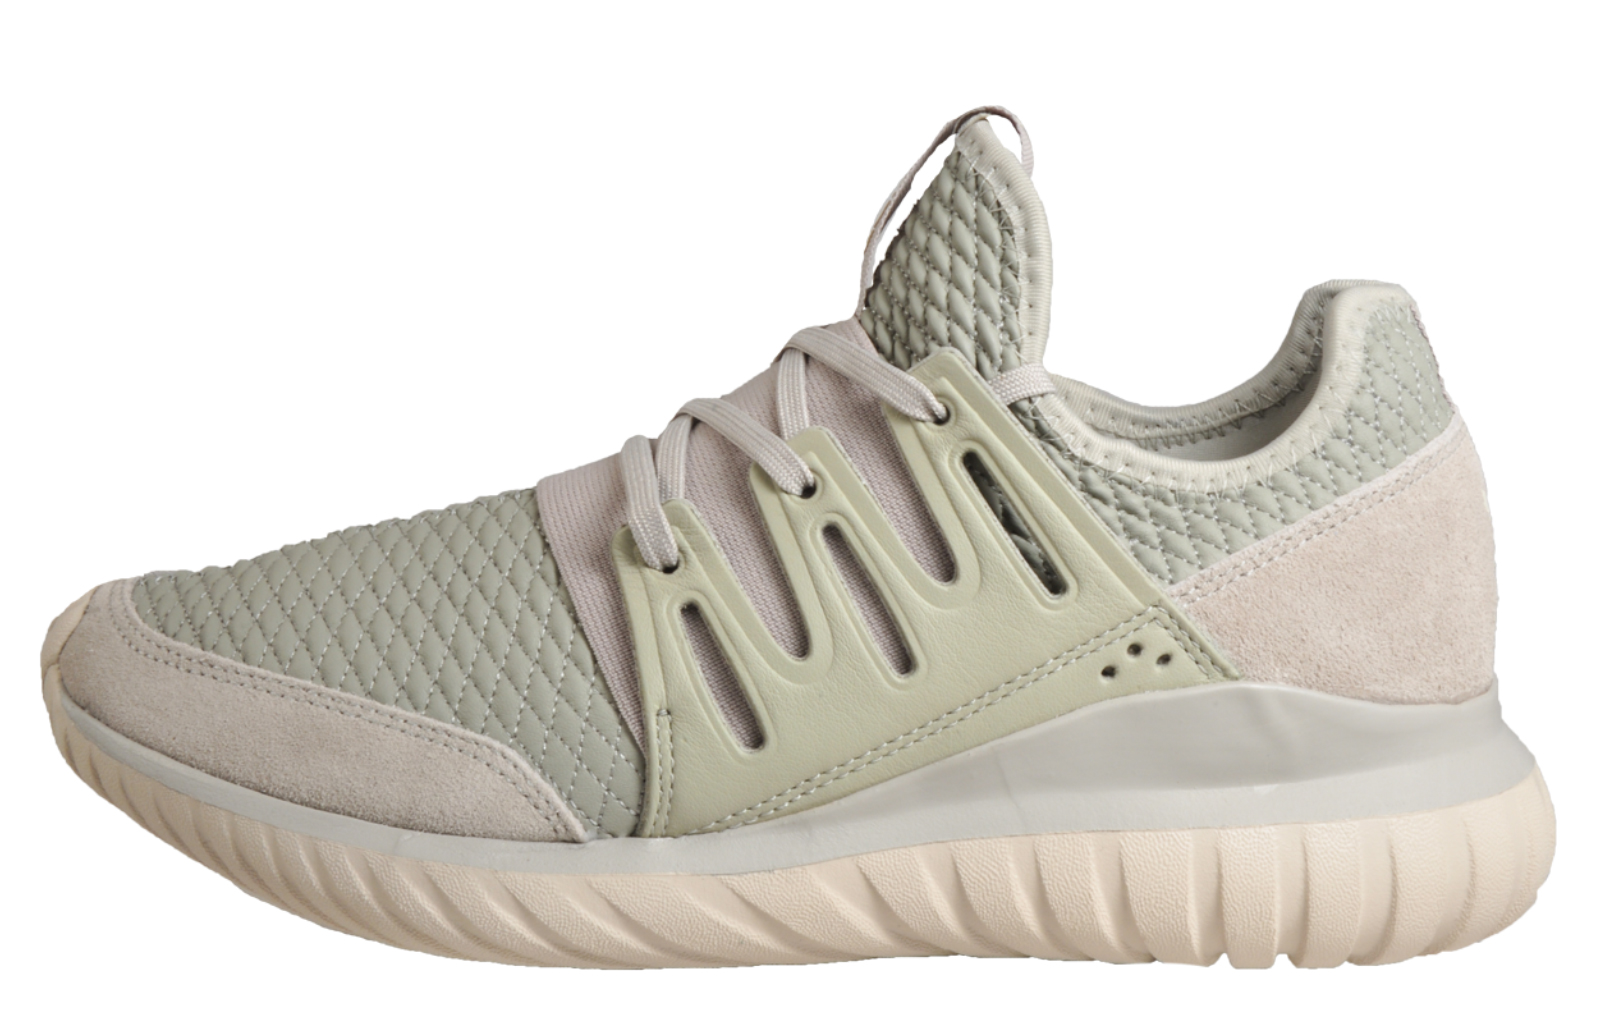 Adidas Originals Tubular Radial Uni - AD169011